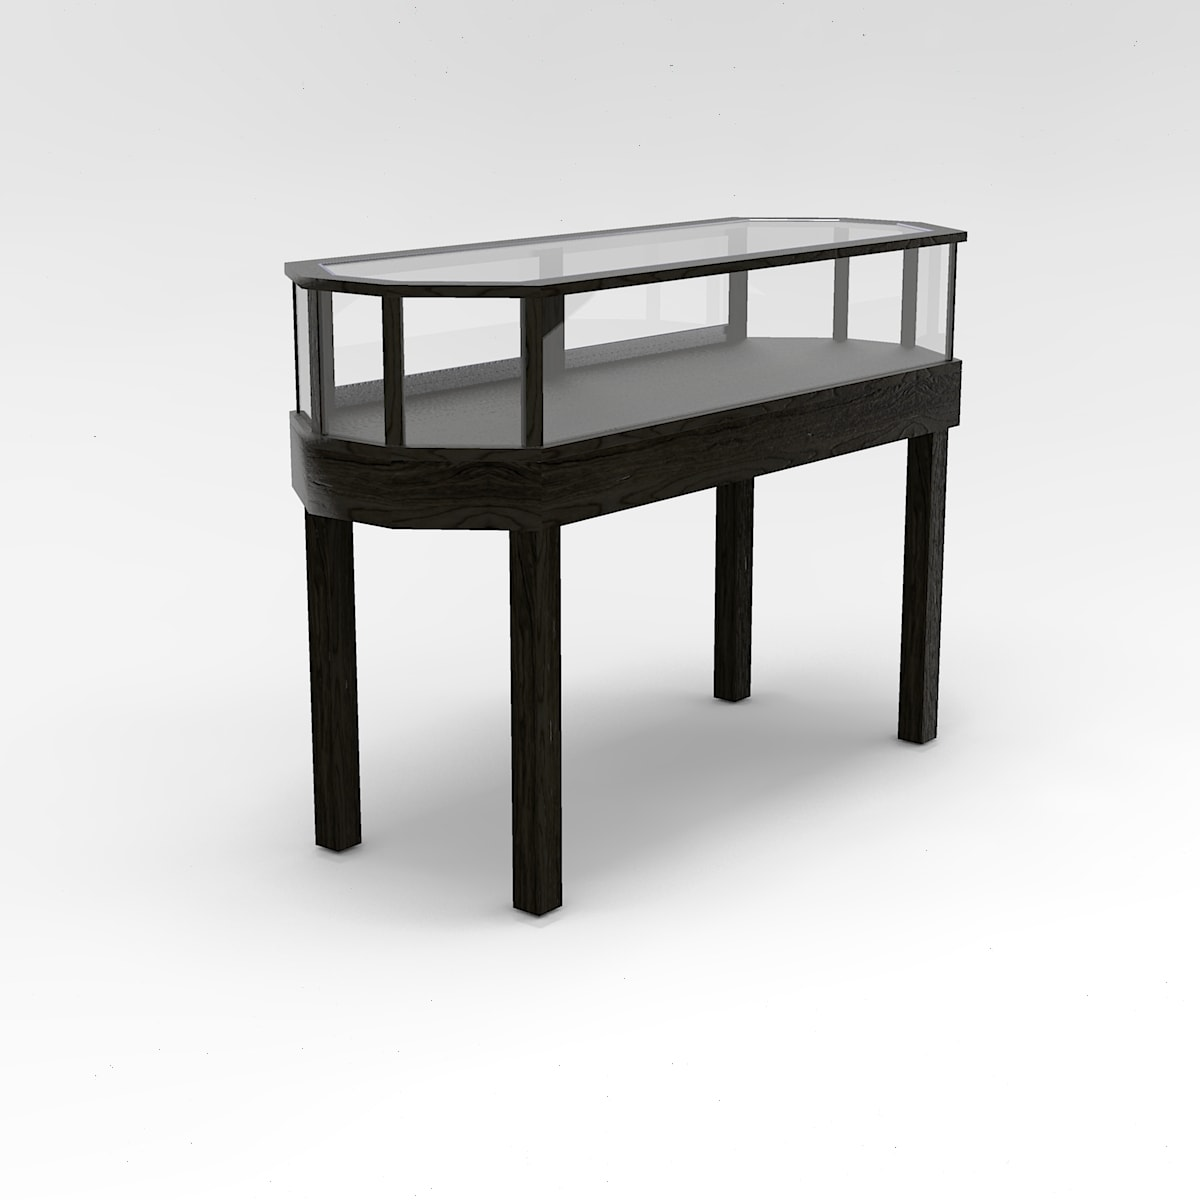 60 Inch Jewelry Vision Straight Leg Octagon Horizontal Display Case to Purchase